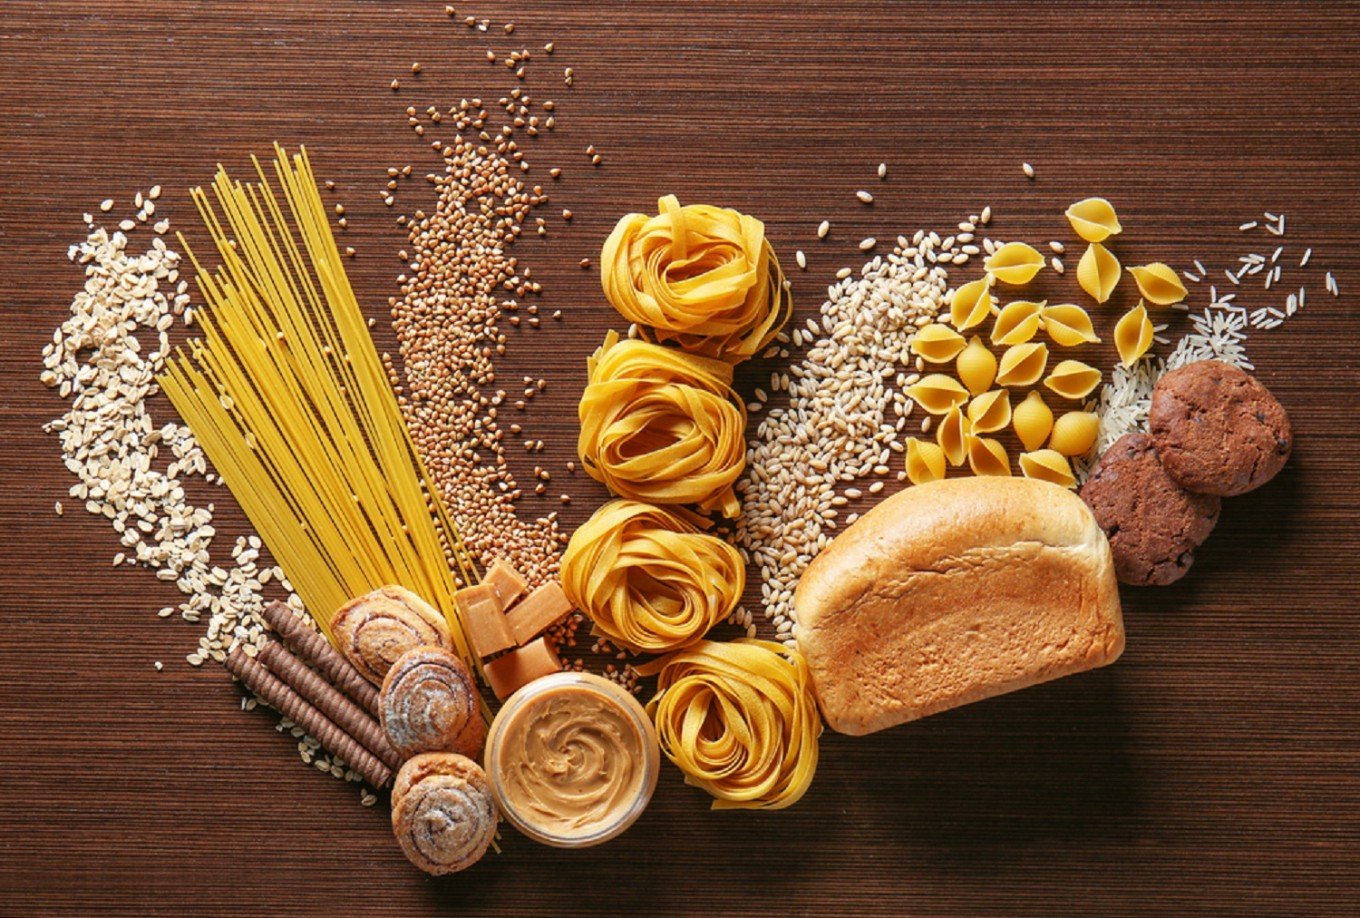 Craving carbs? Blame your brain, Japan study finds